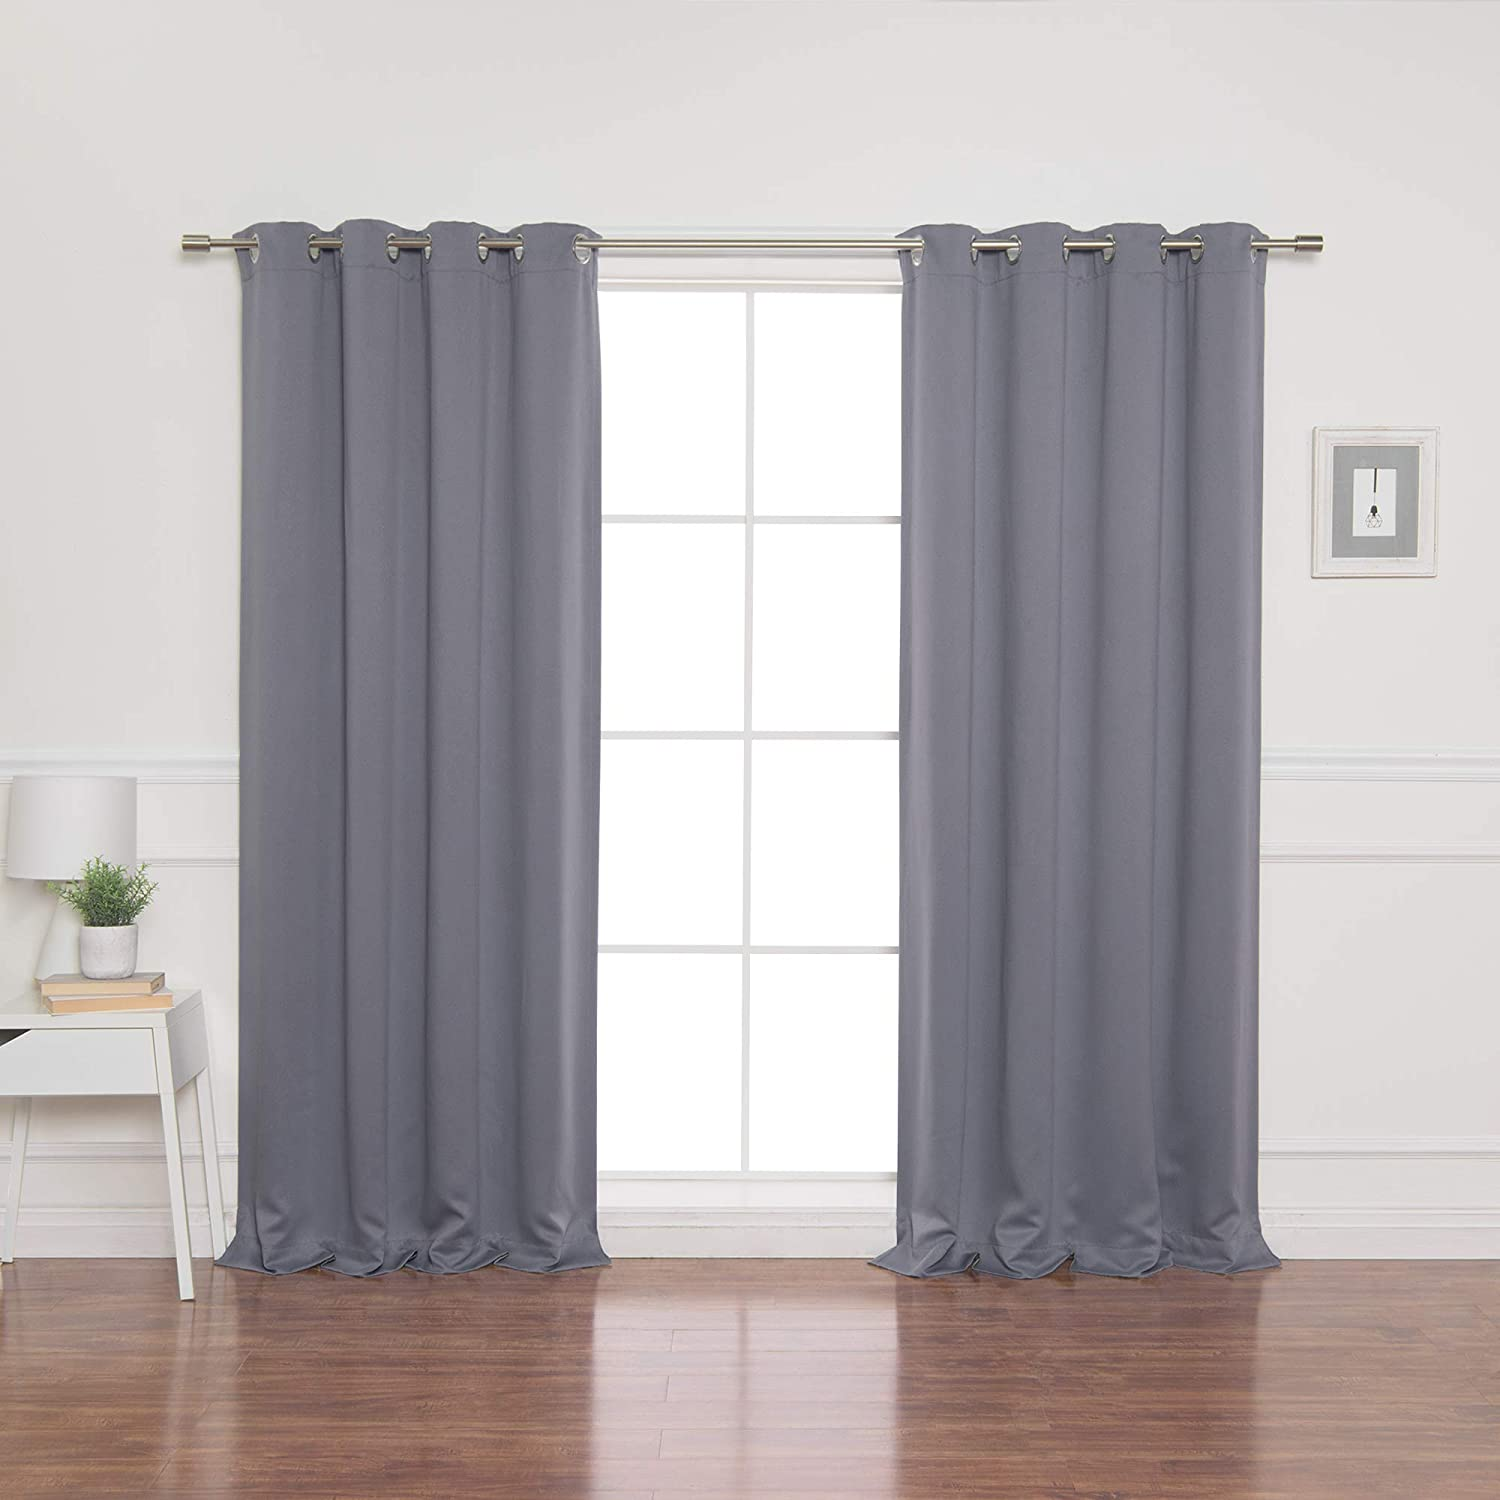 "Best Home Fashion Thermal Insulated Blackout Curtains - Stainless Steel Nickel Grommet Top - Grey - 52"" W X 96"" L - (Set of 2 Panels) …"